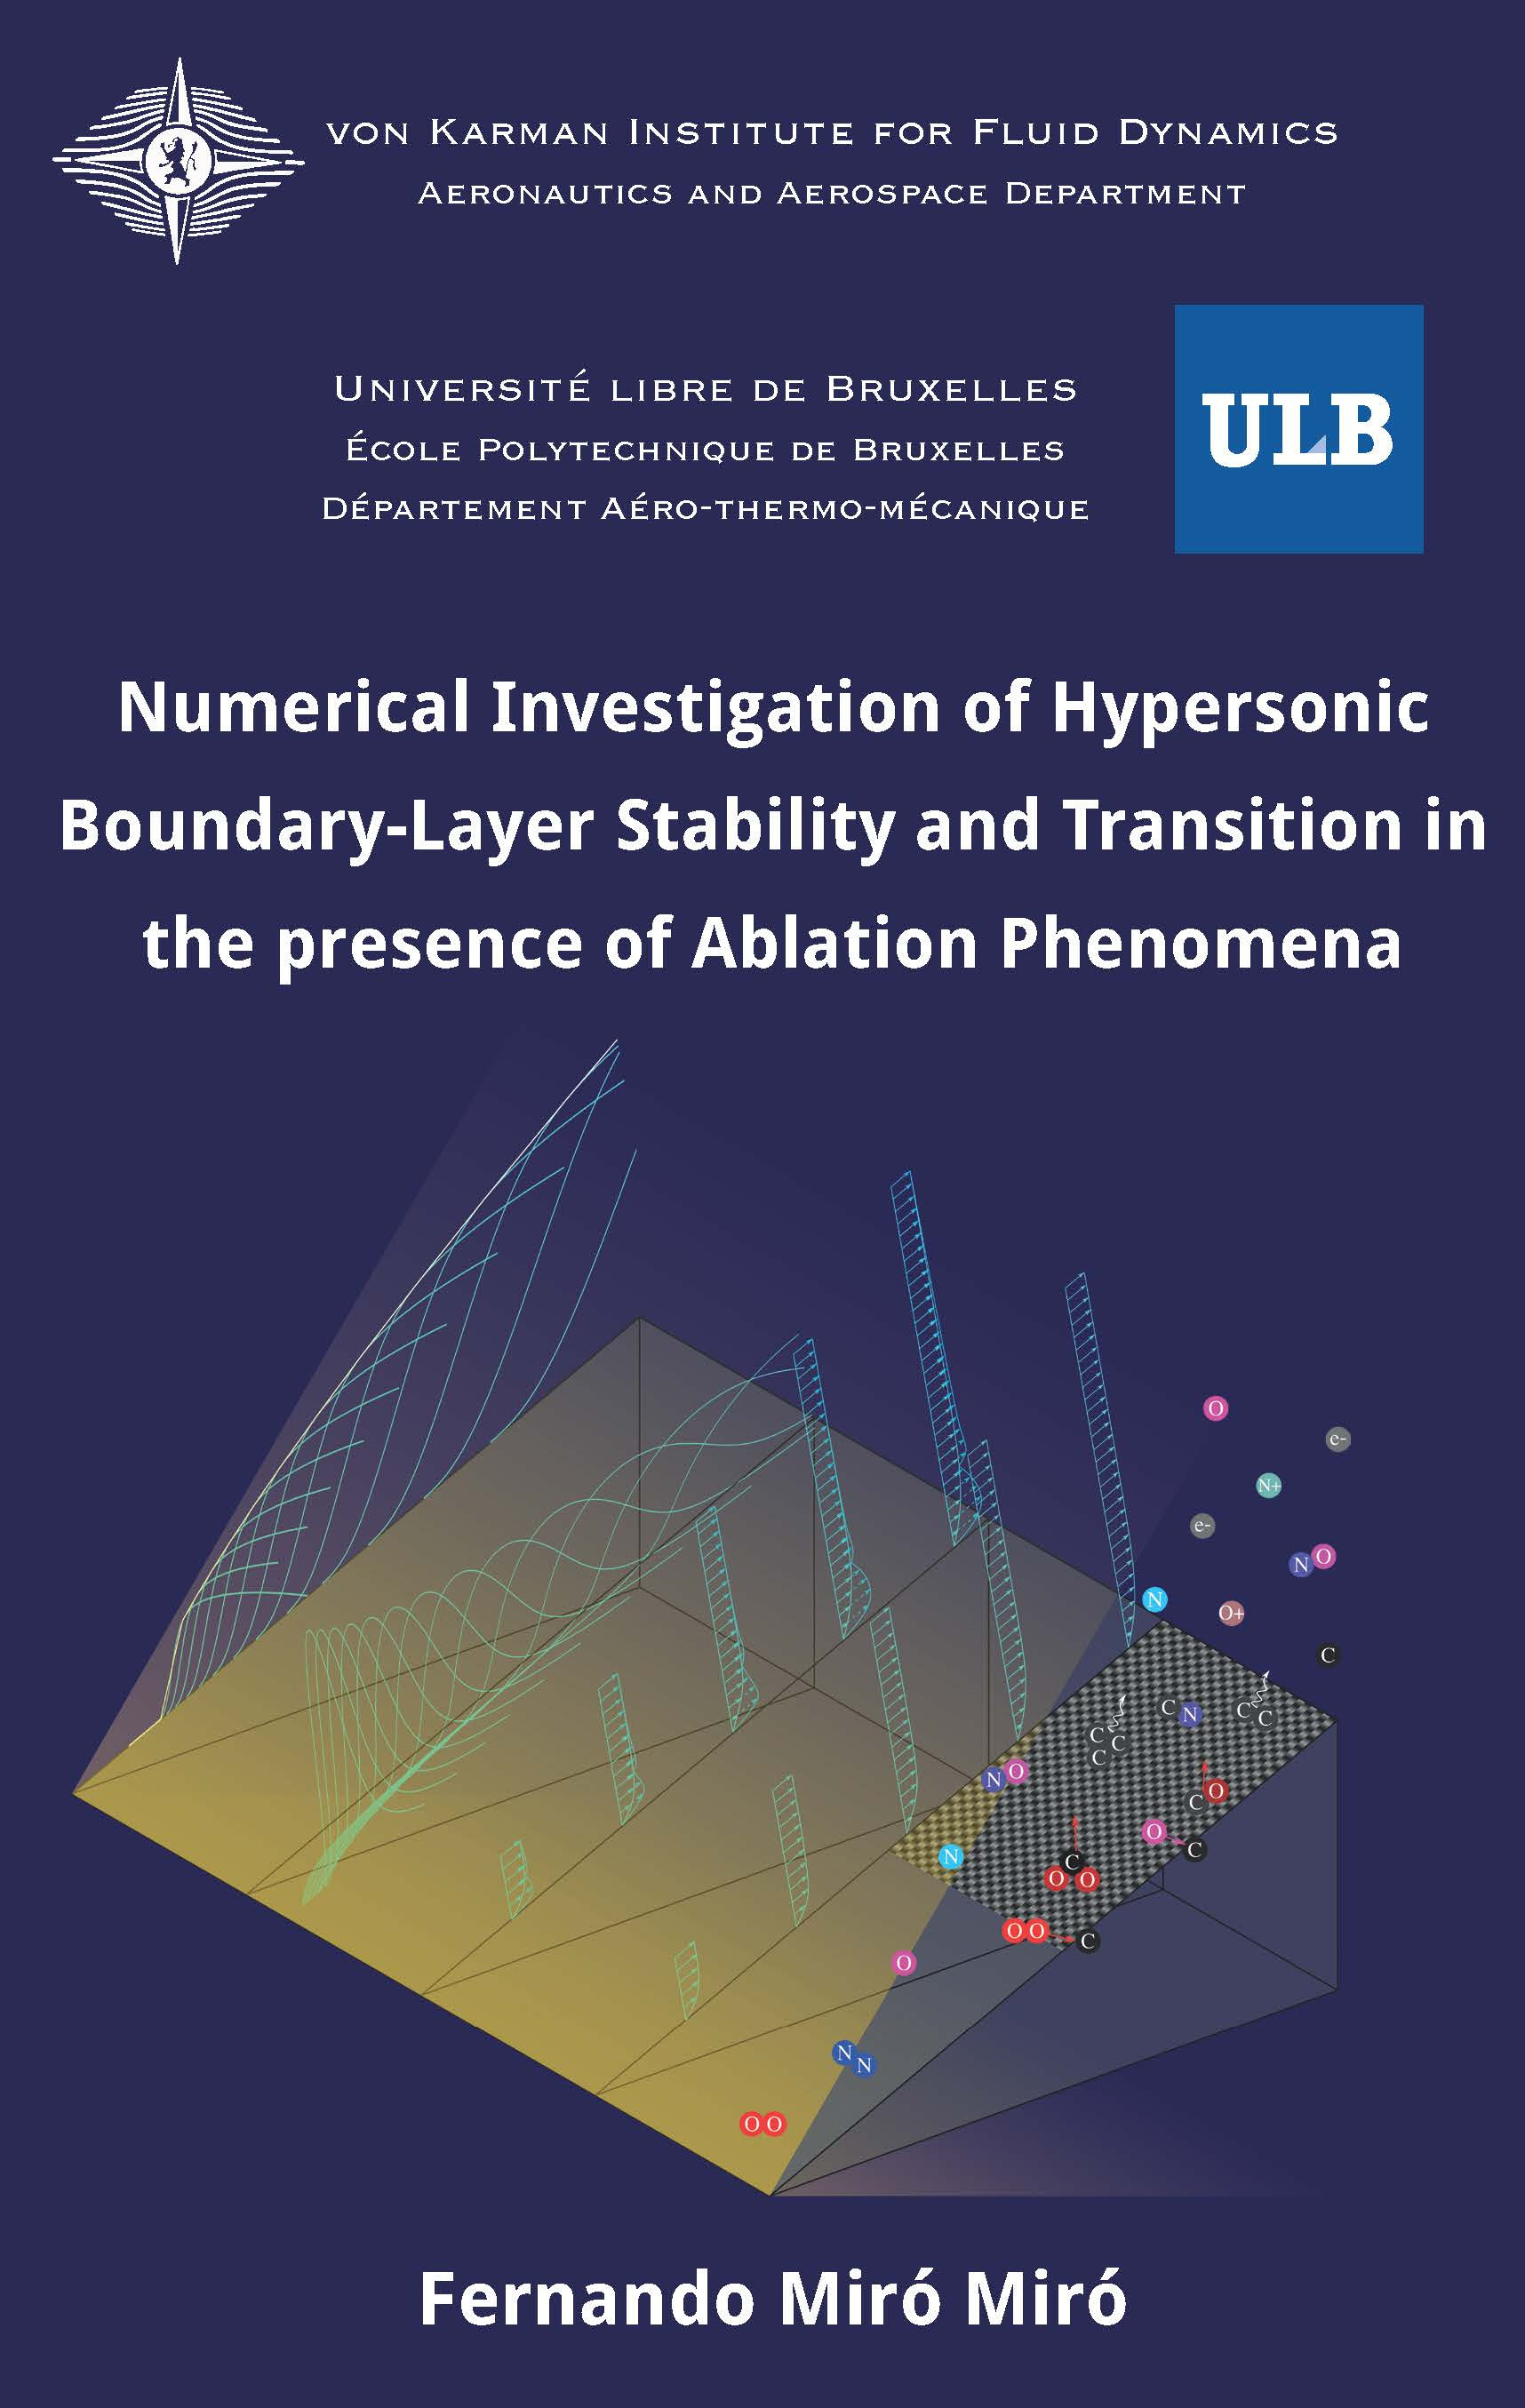 Numerical investigation of hypersonic boundary-layer stability and transition in the presence of ablation phenomena  - Fernando Miró Miró - Ph.D. Thesis - Free download